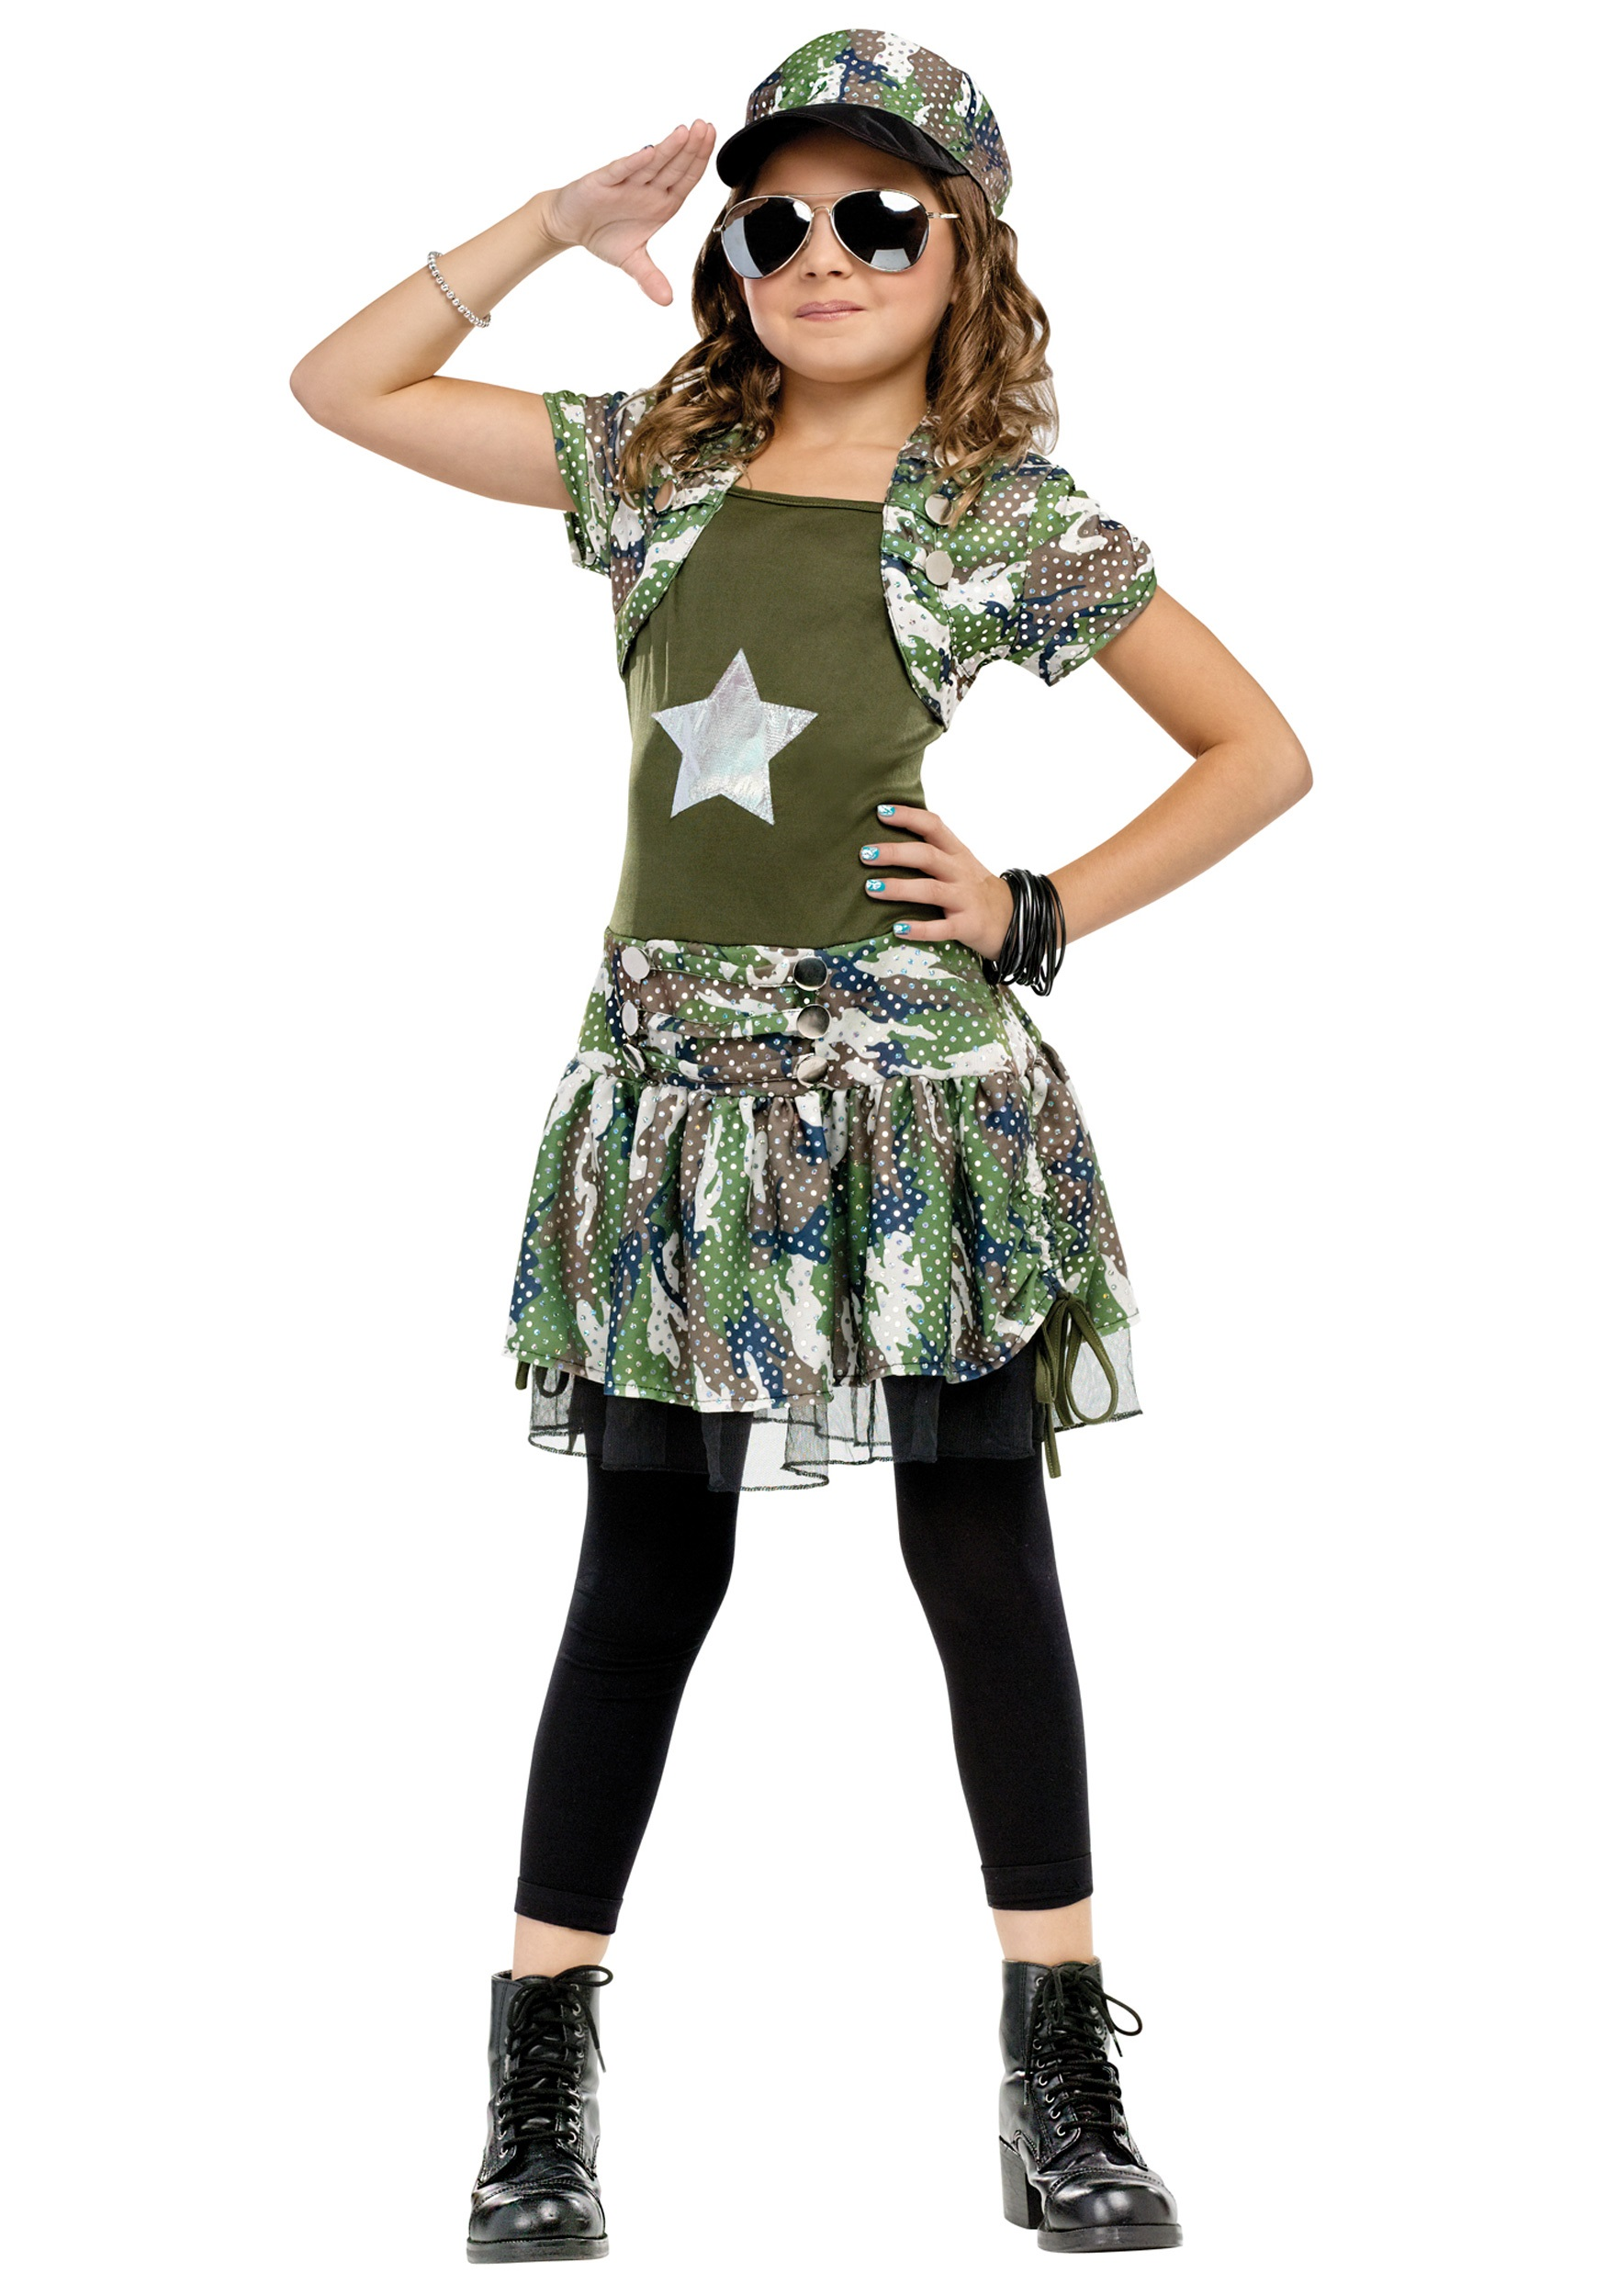 Beautiful Outfit Army Adorable Dog - army-brat-costume  Image_608448  .jpg